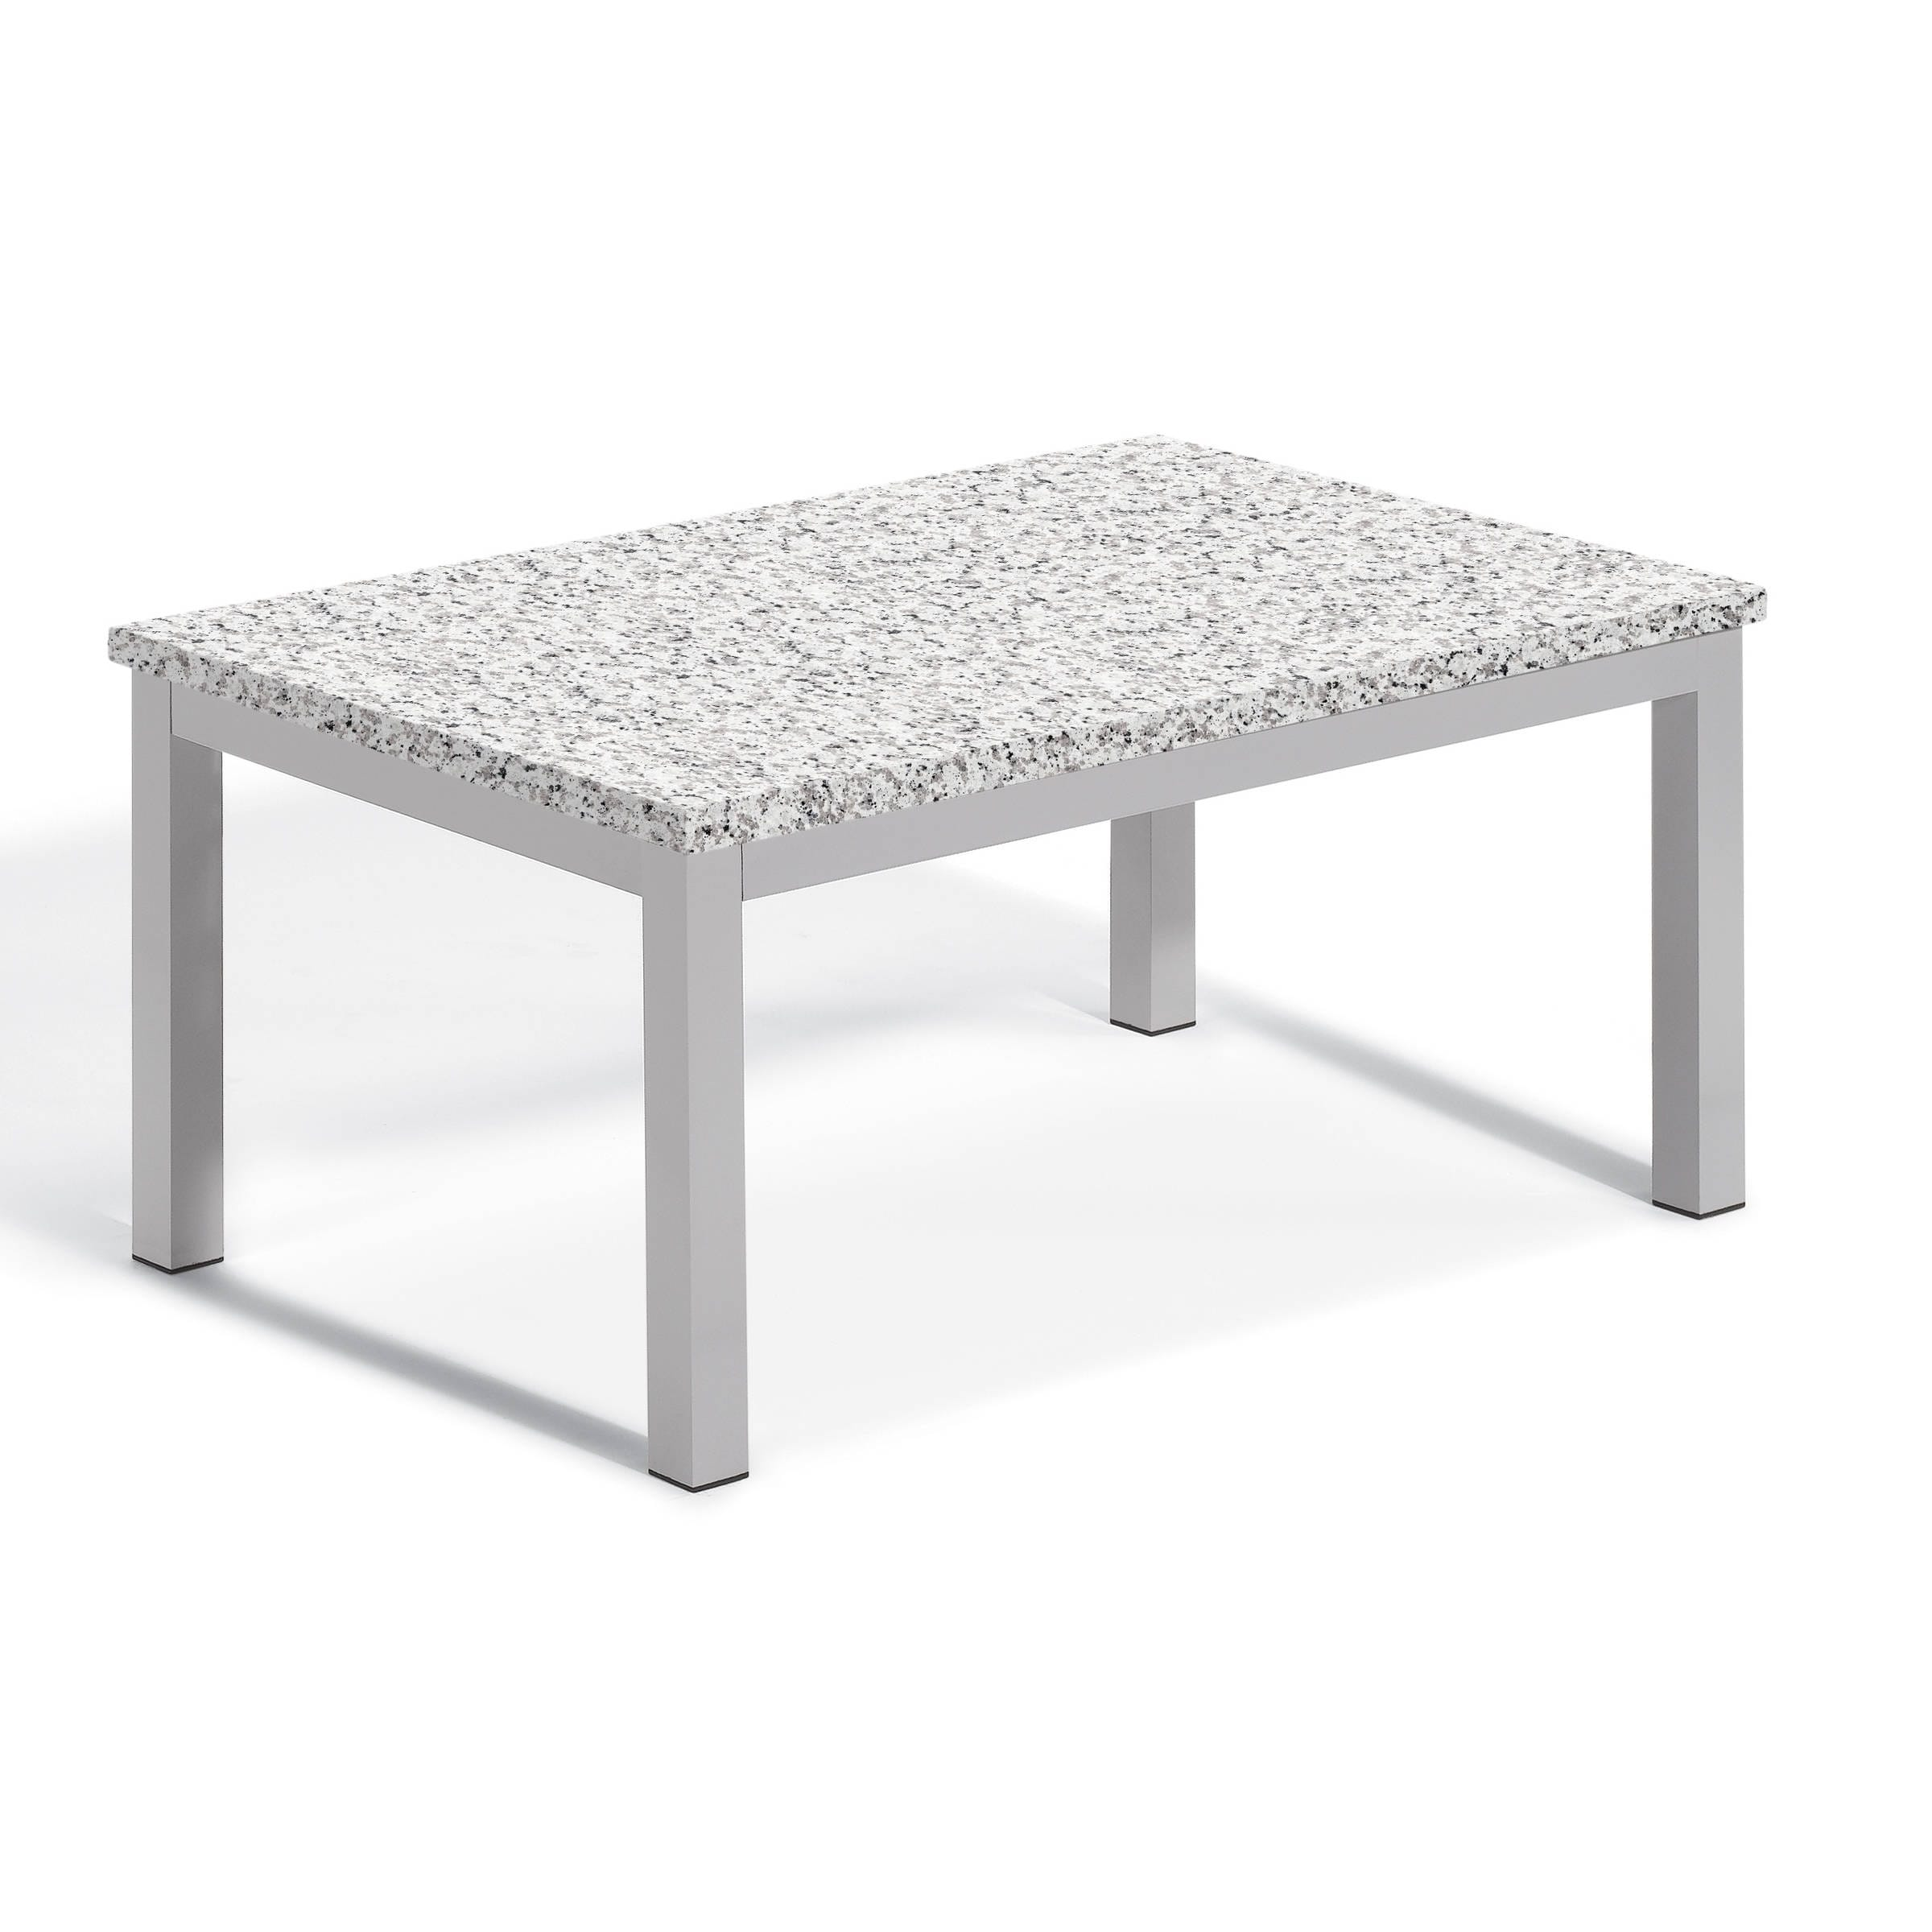 Oxford Garden Travira Lite-Core Granite Ash Coffee Table ...